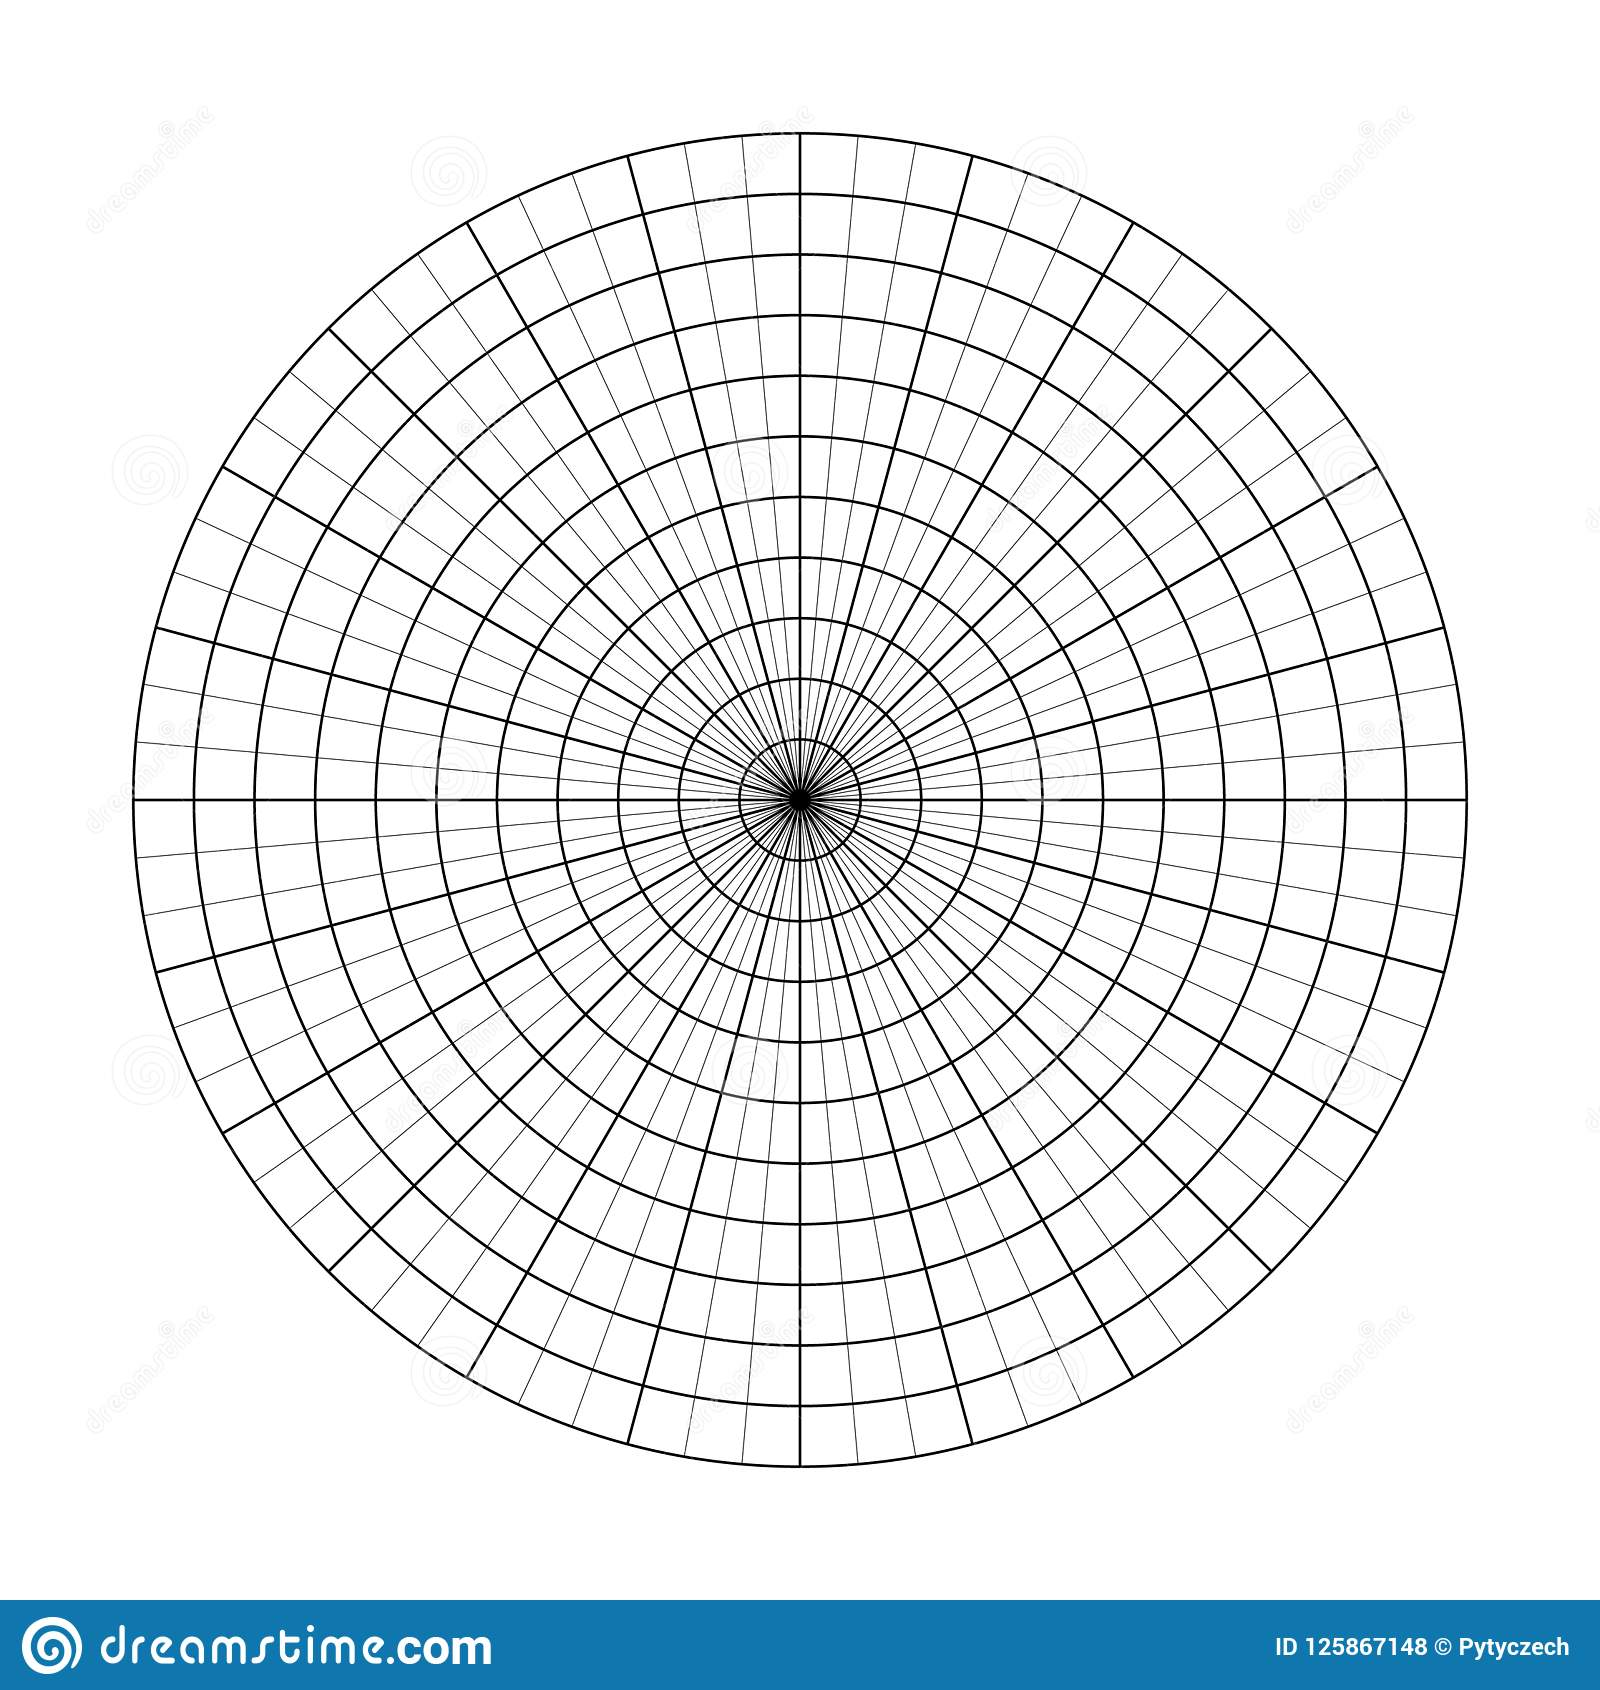 polar grid of 10 concentric circles and 5 degrees steps. blank